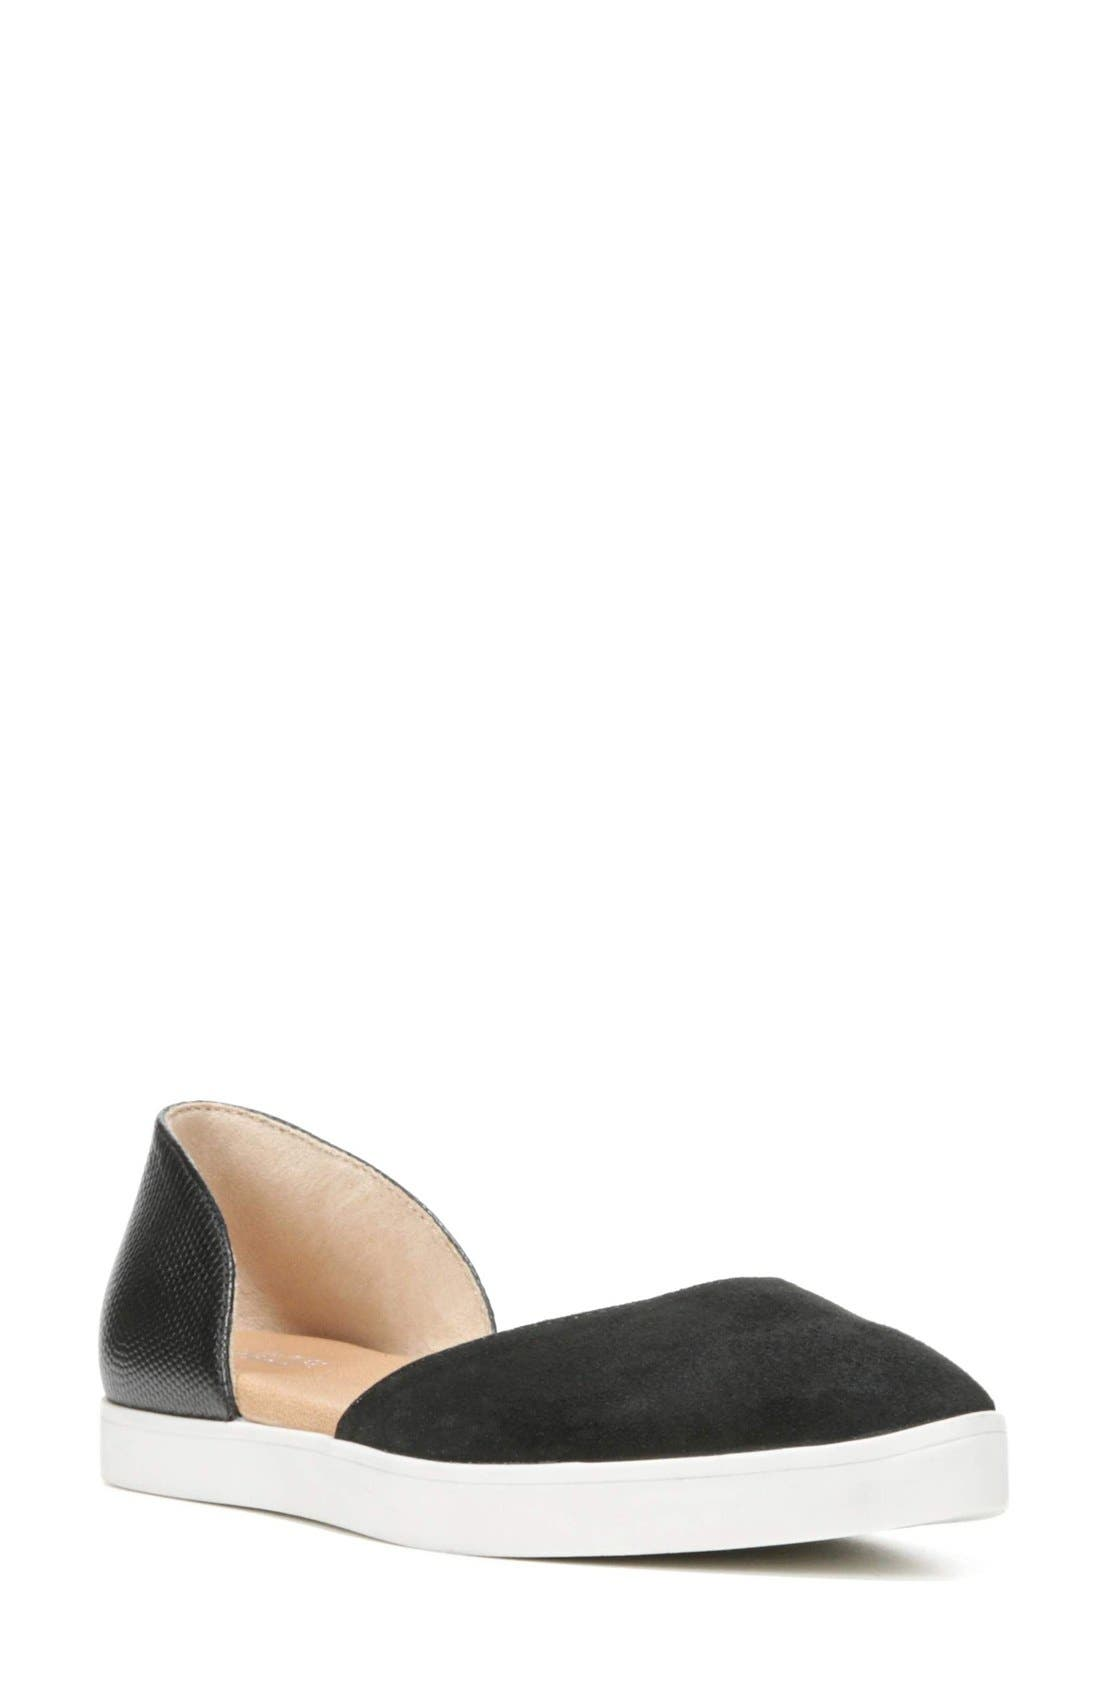 Vienna II d'Orsay Flat,                         Main,                         color, Black Suede/ Leather